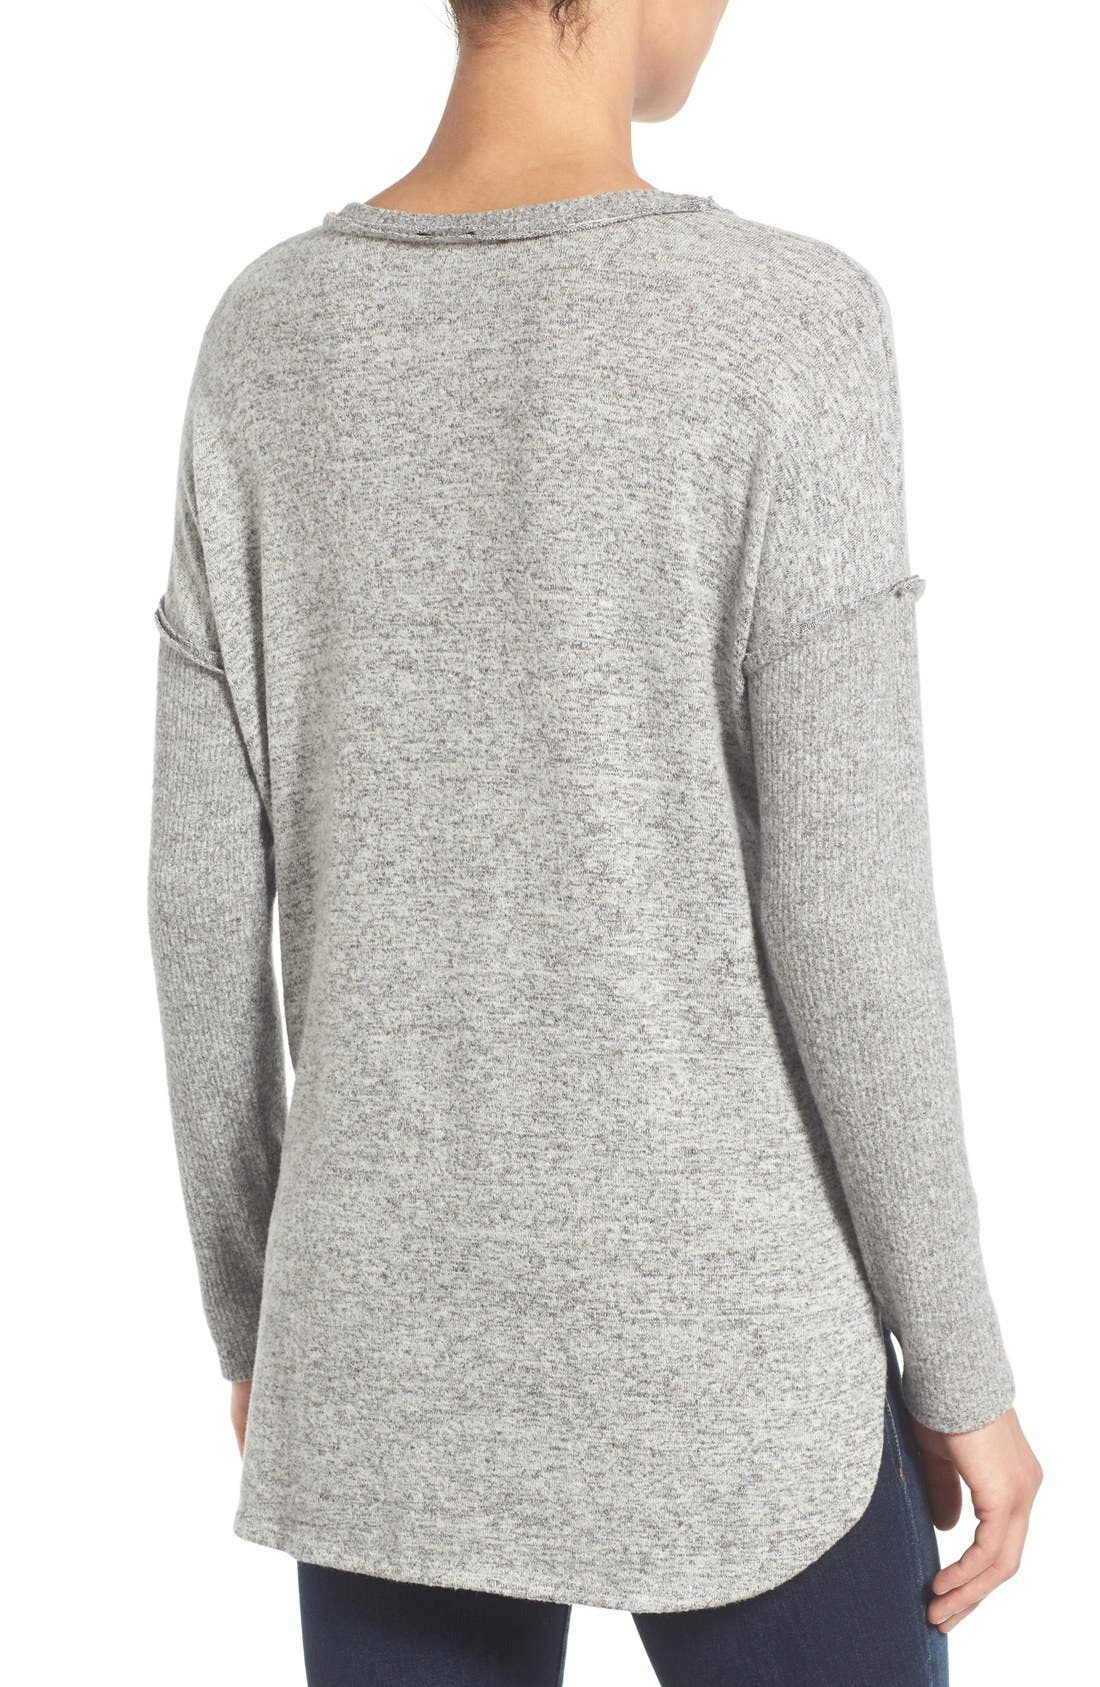 Rib Long Sleeve Fuzzy Top,                             Alternate thumbnail 2, color,                             LIGHT HEATHER GREY